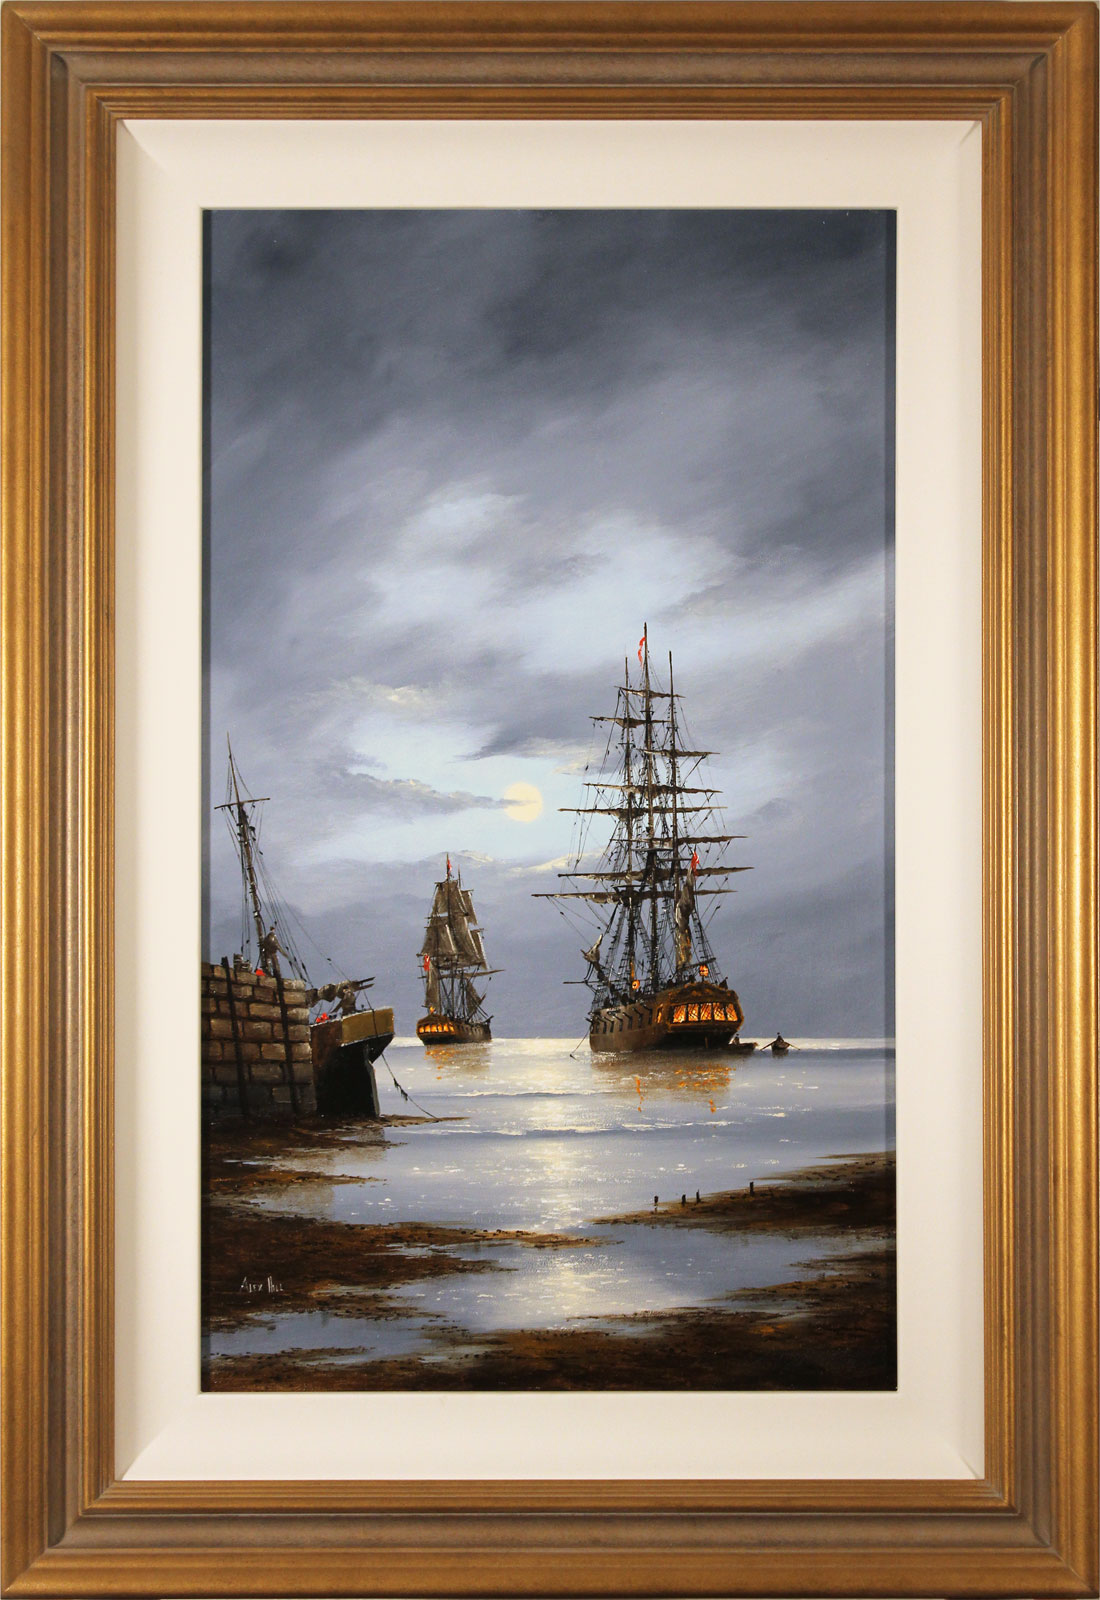 Alex Hill, Original oil painting on panel, Leaving Harbour, click to enlarge